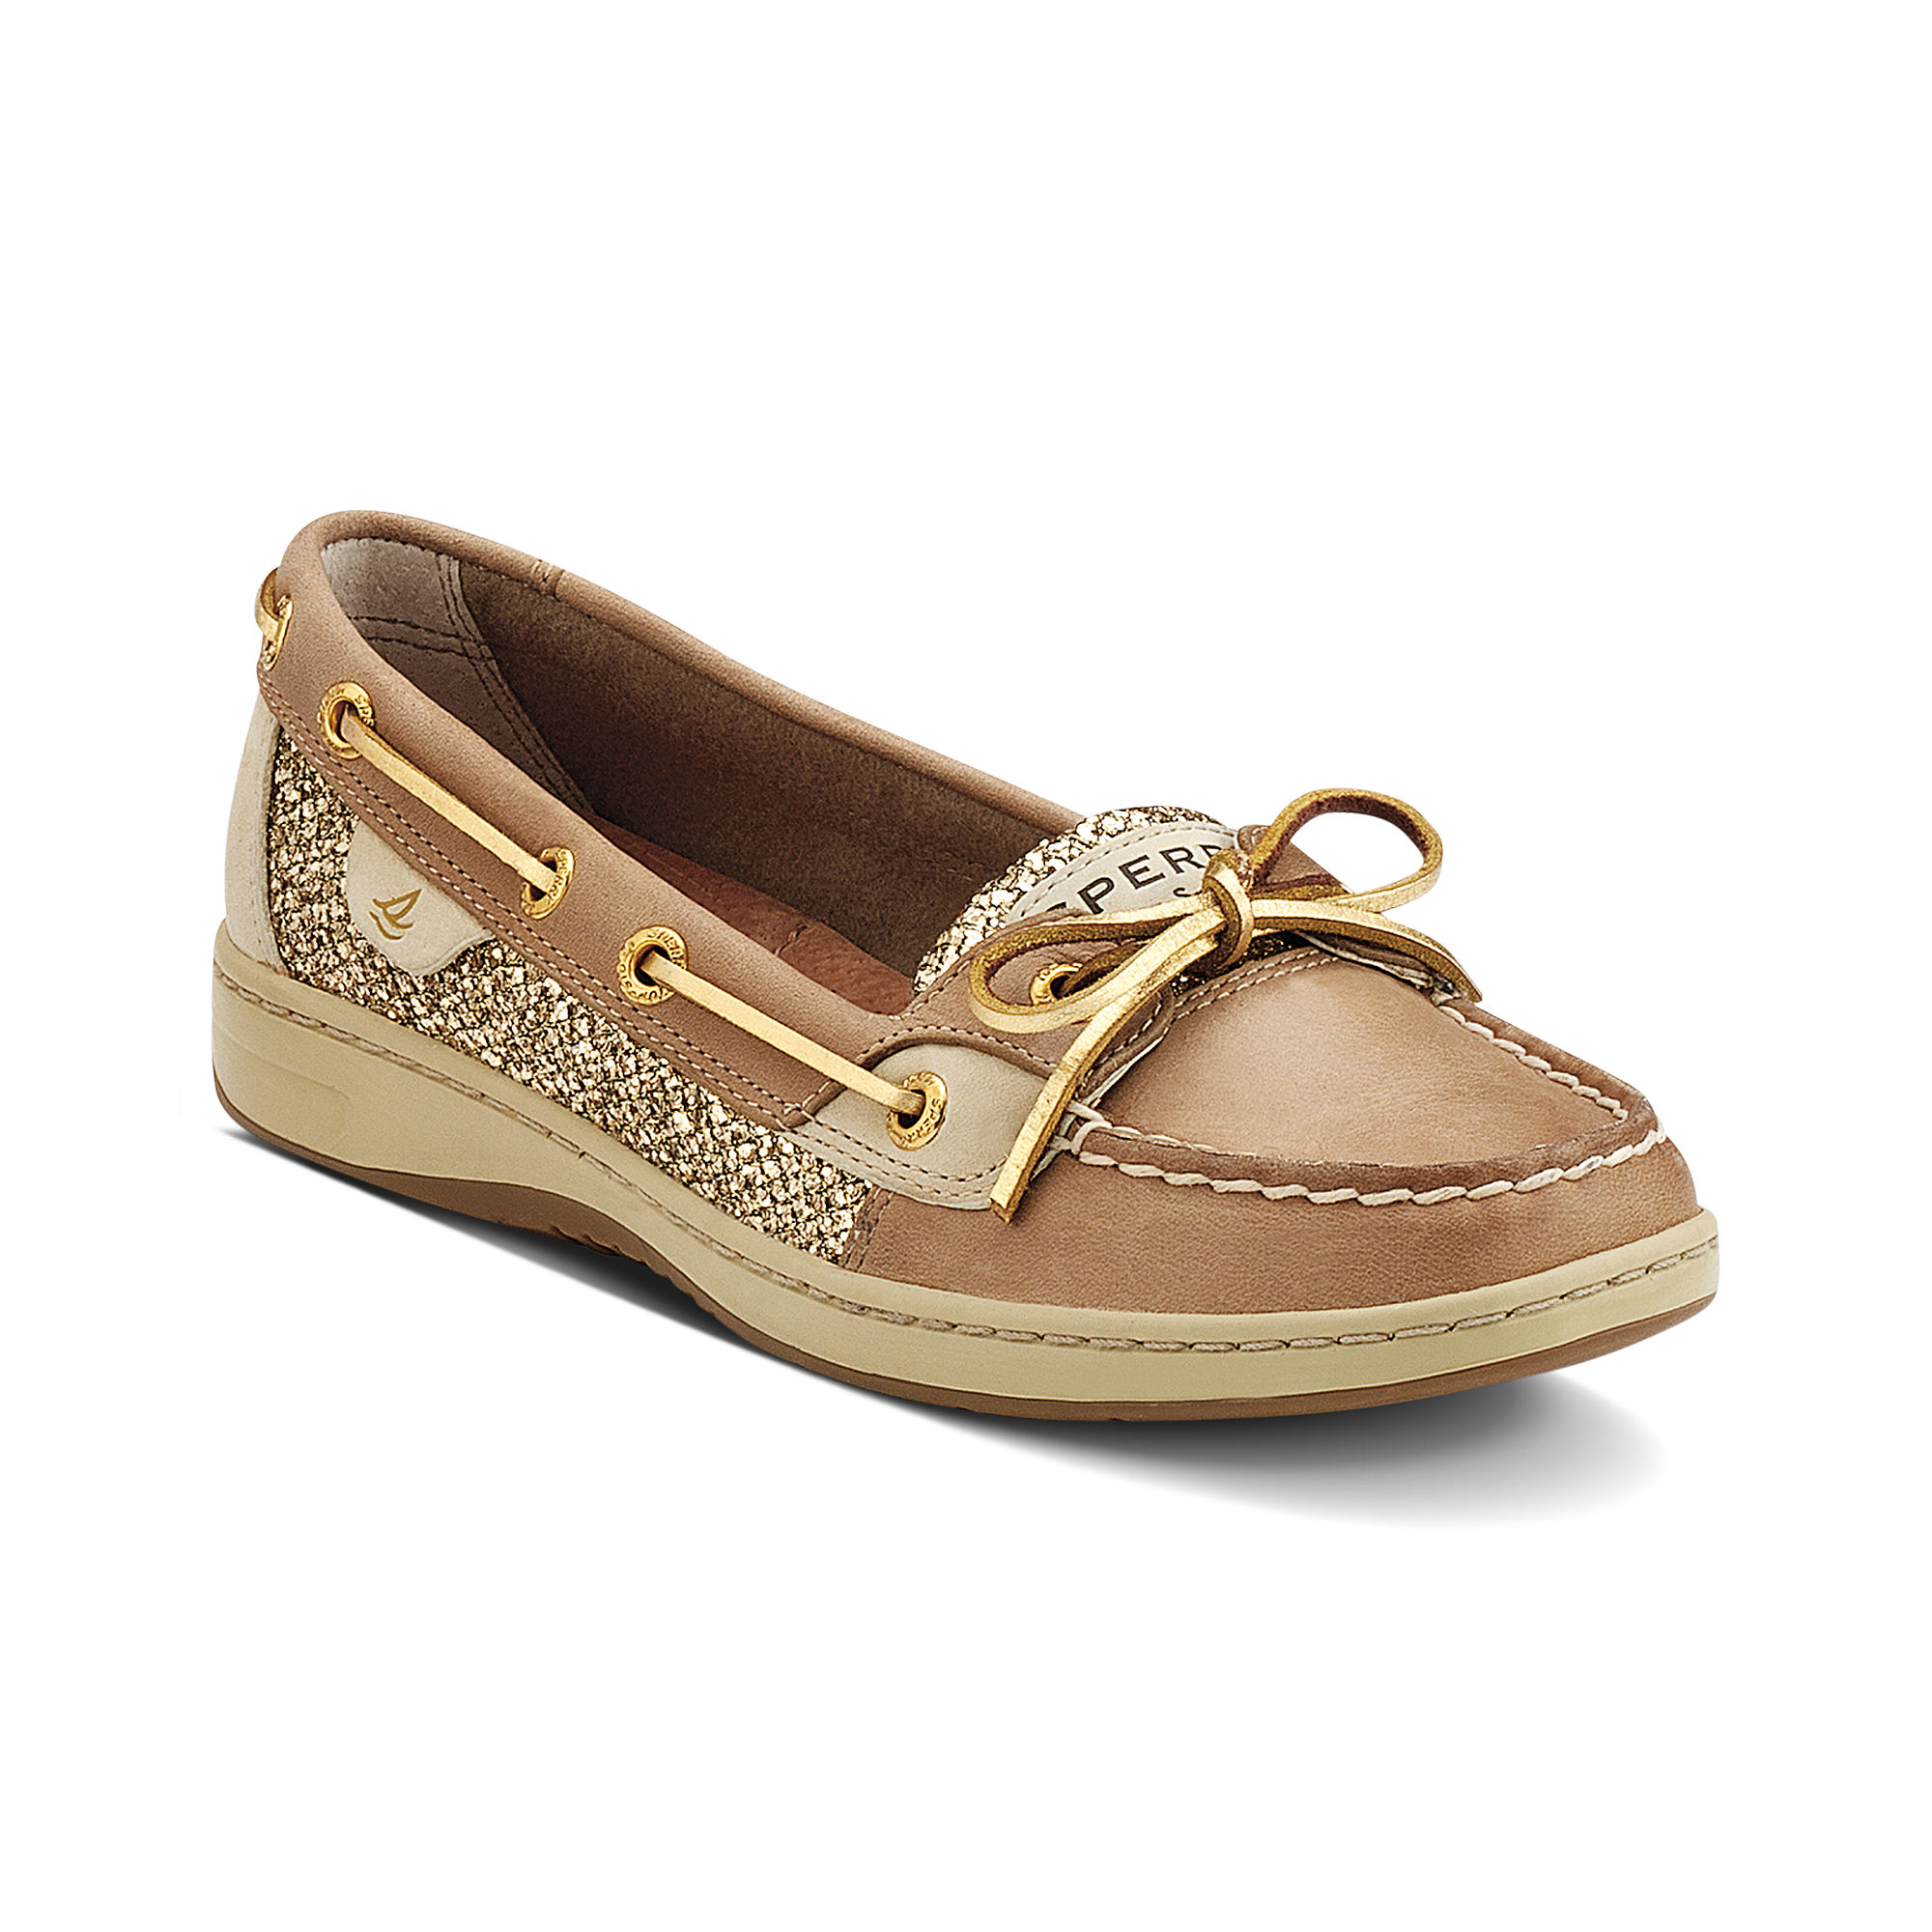 sperry top sider angelfish boat shoes in brown lyst